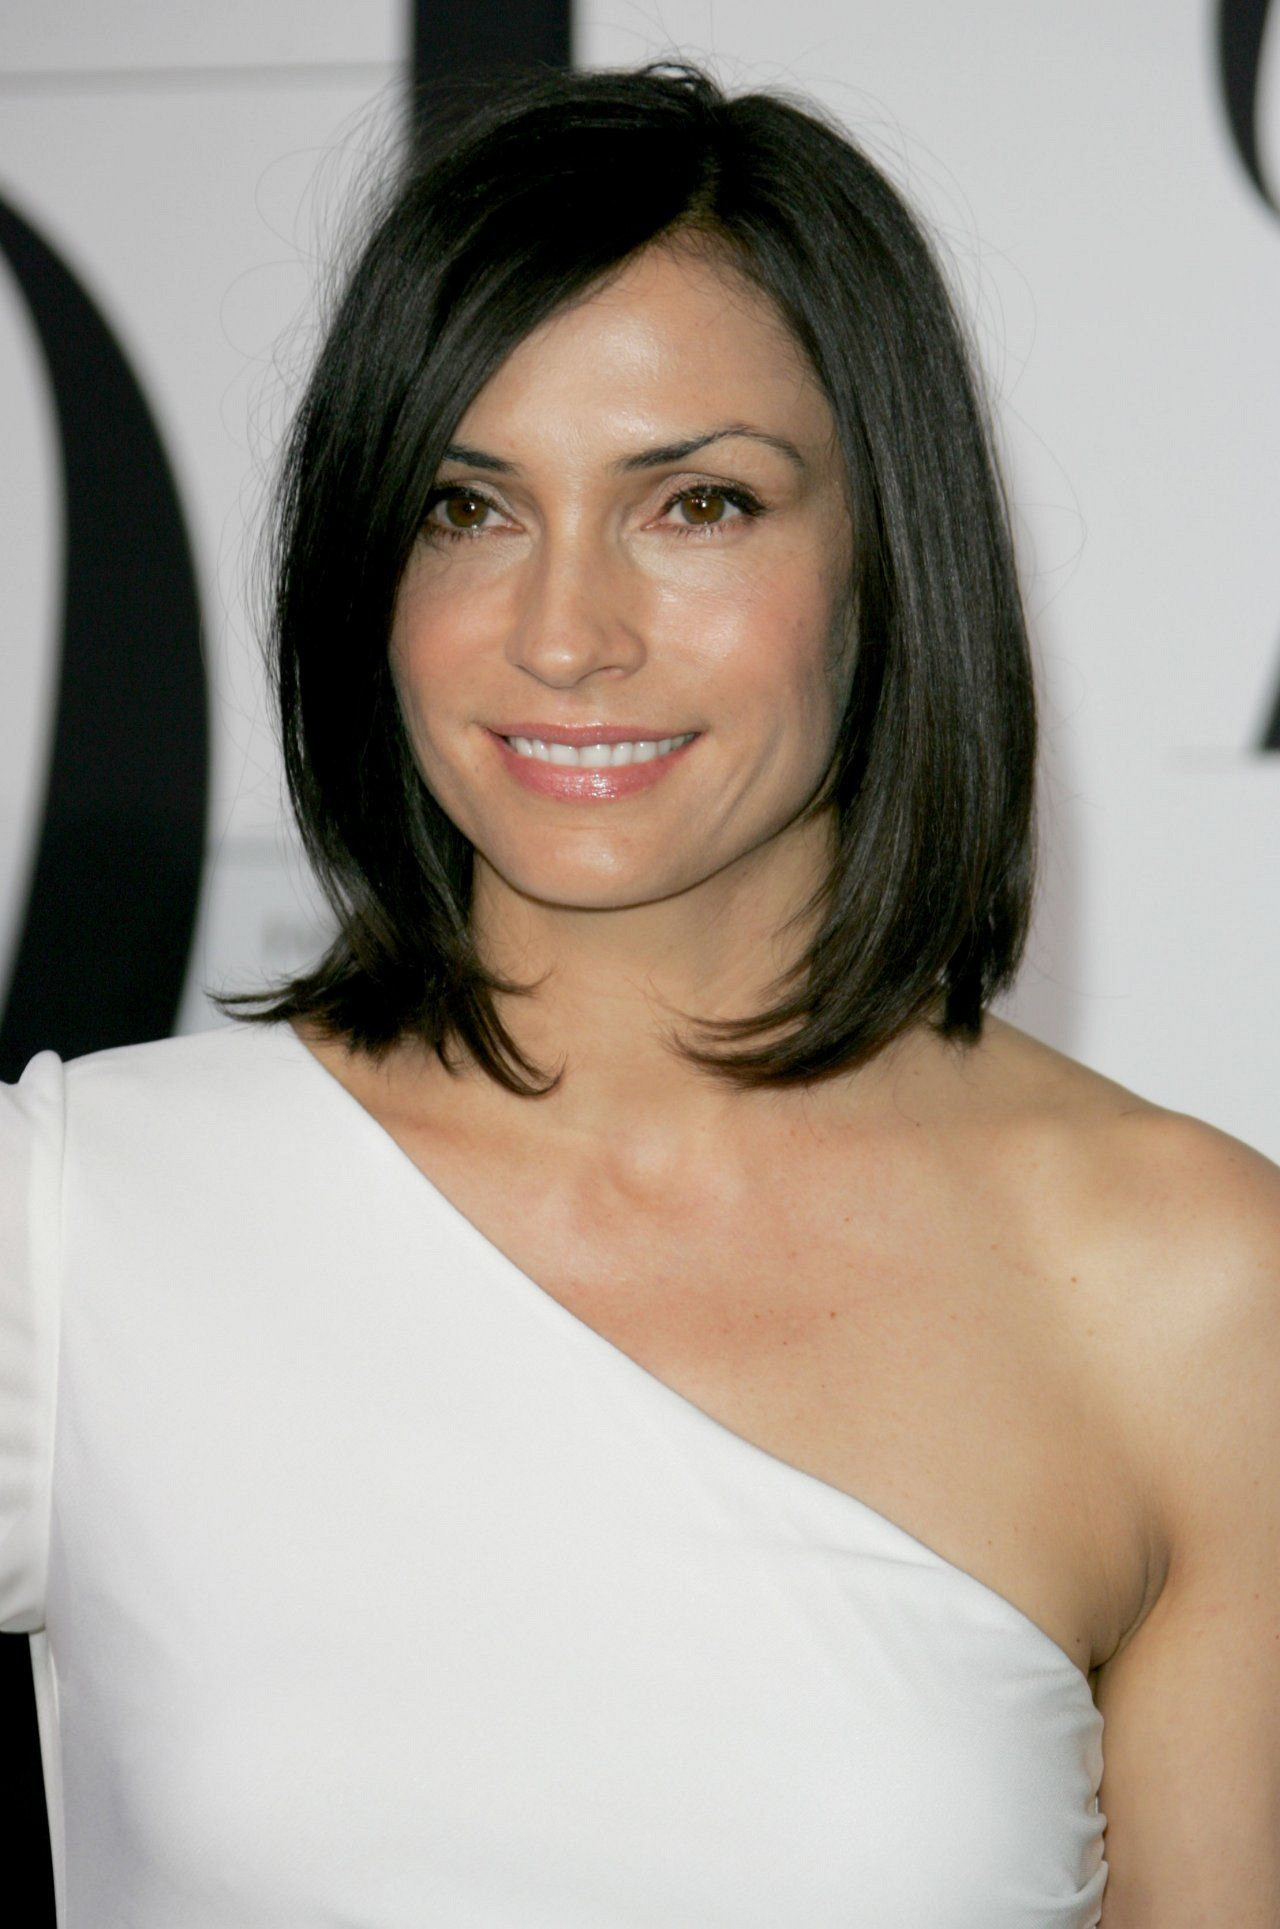 Famke janssen lord sex